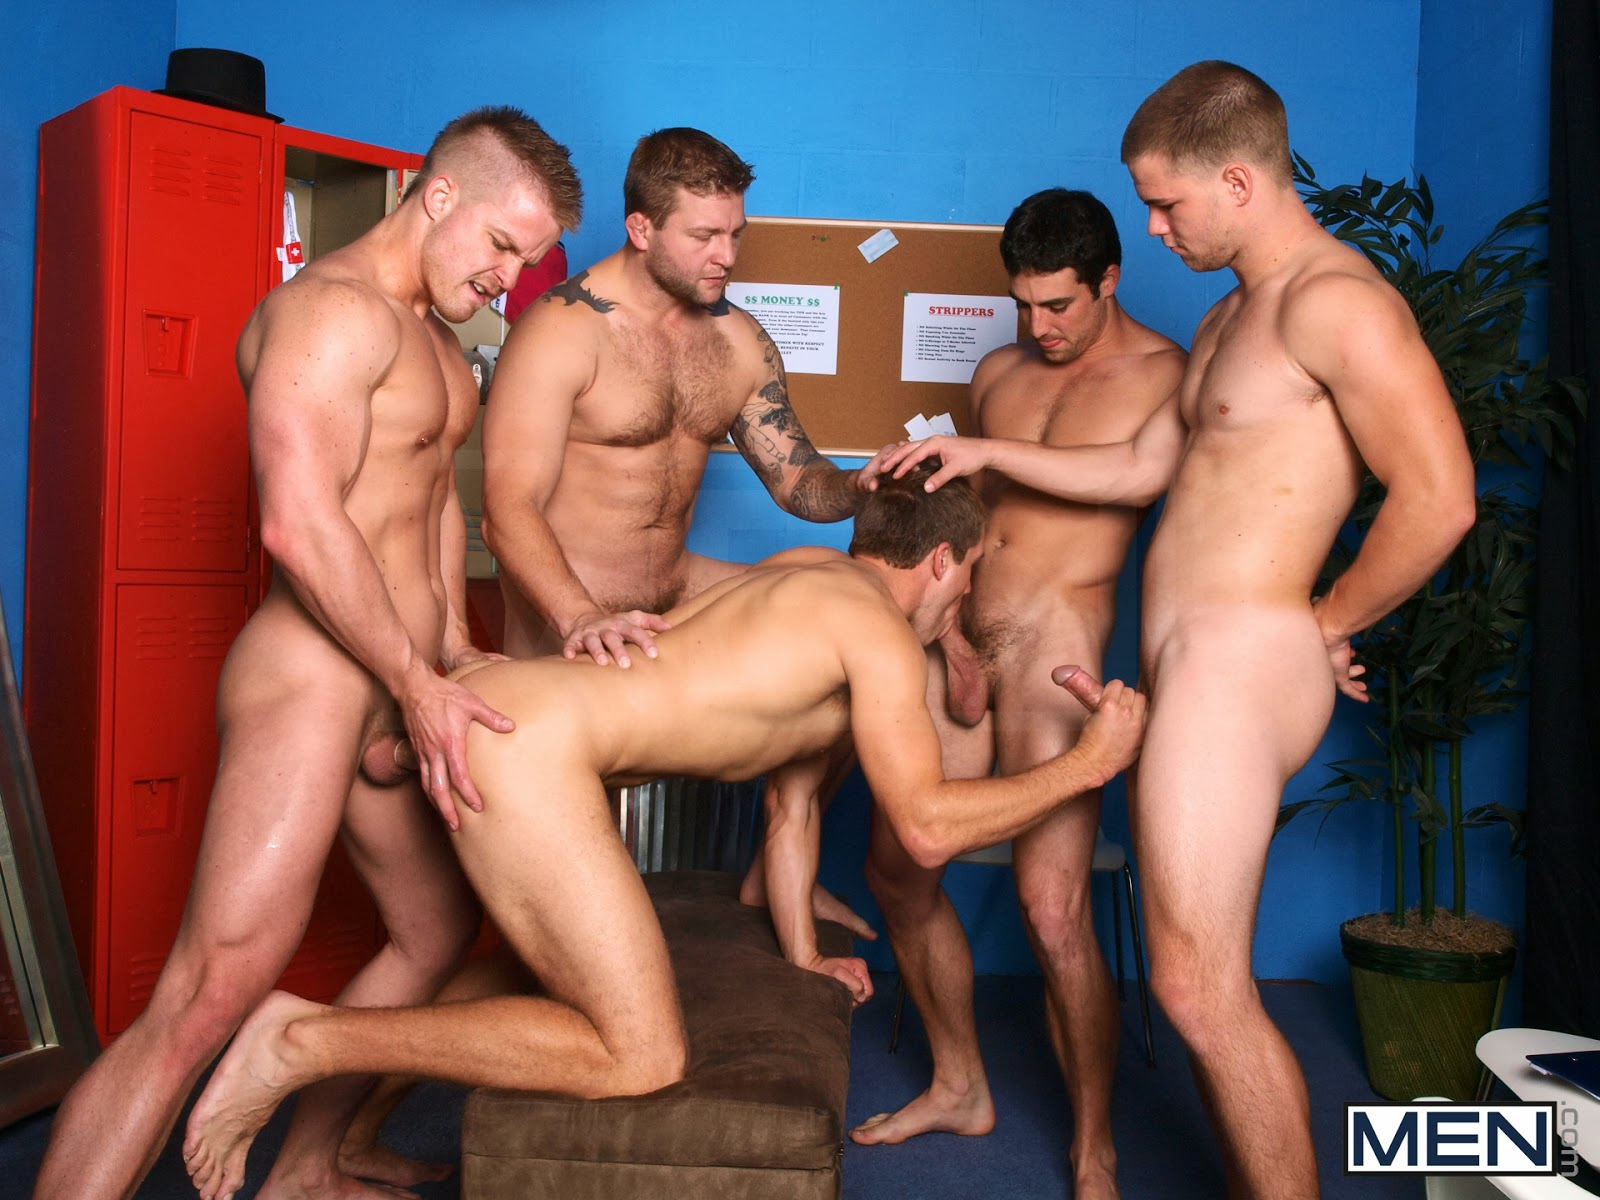 Free Gay Orgy Porn Tube Pictures Galleries - DaGaycom